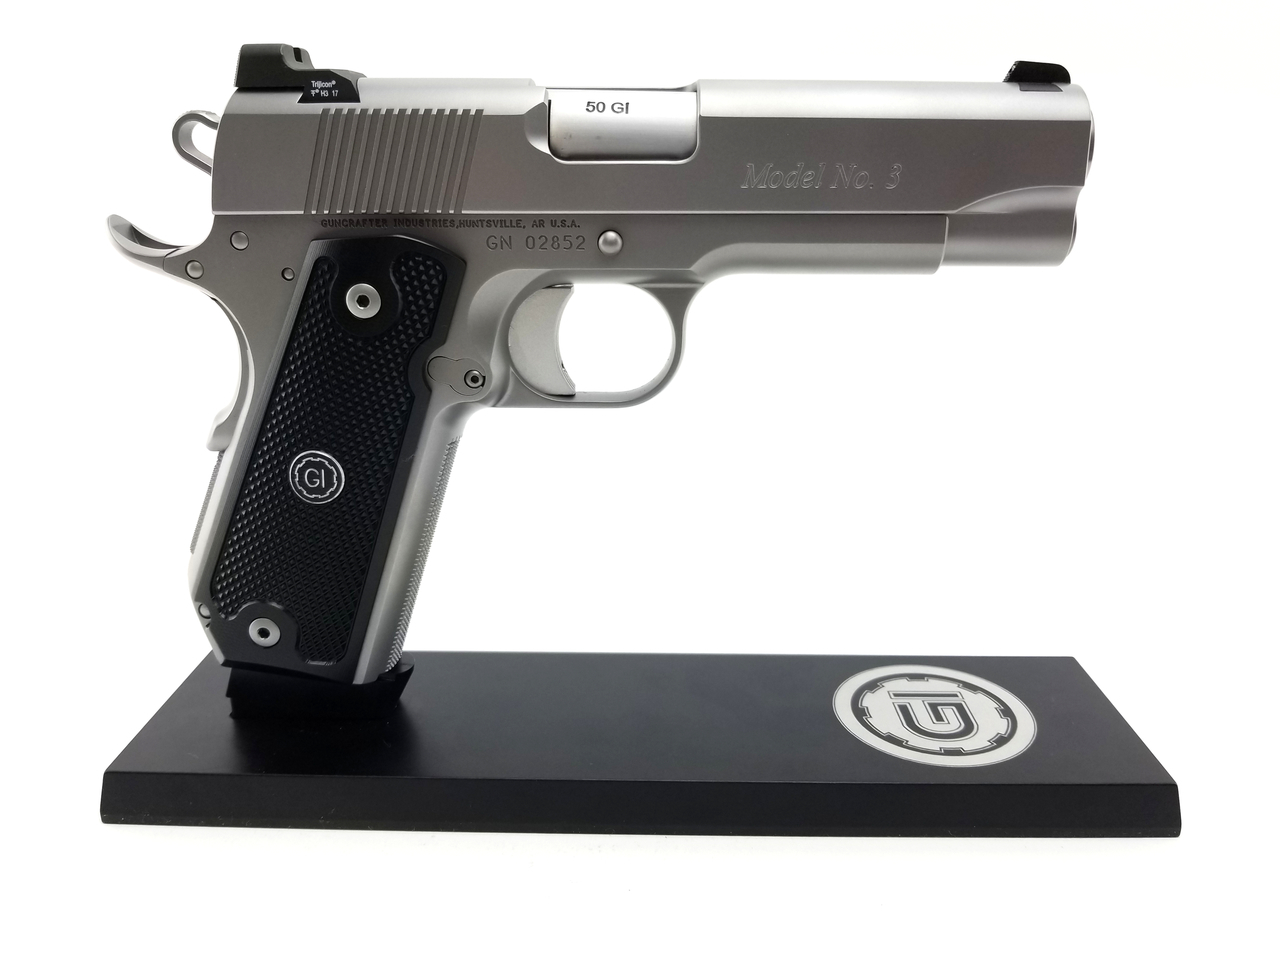 Guncrafter Industries Model 3 pistol